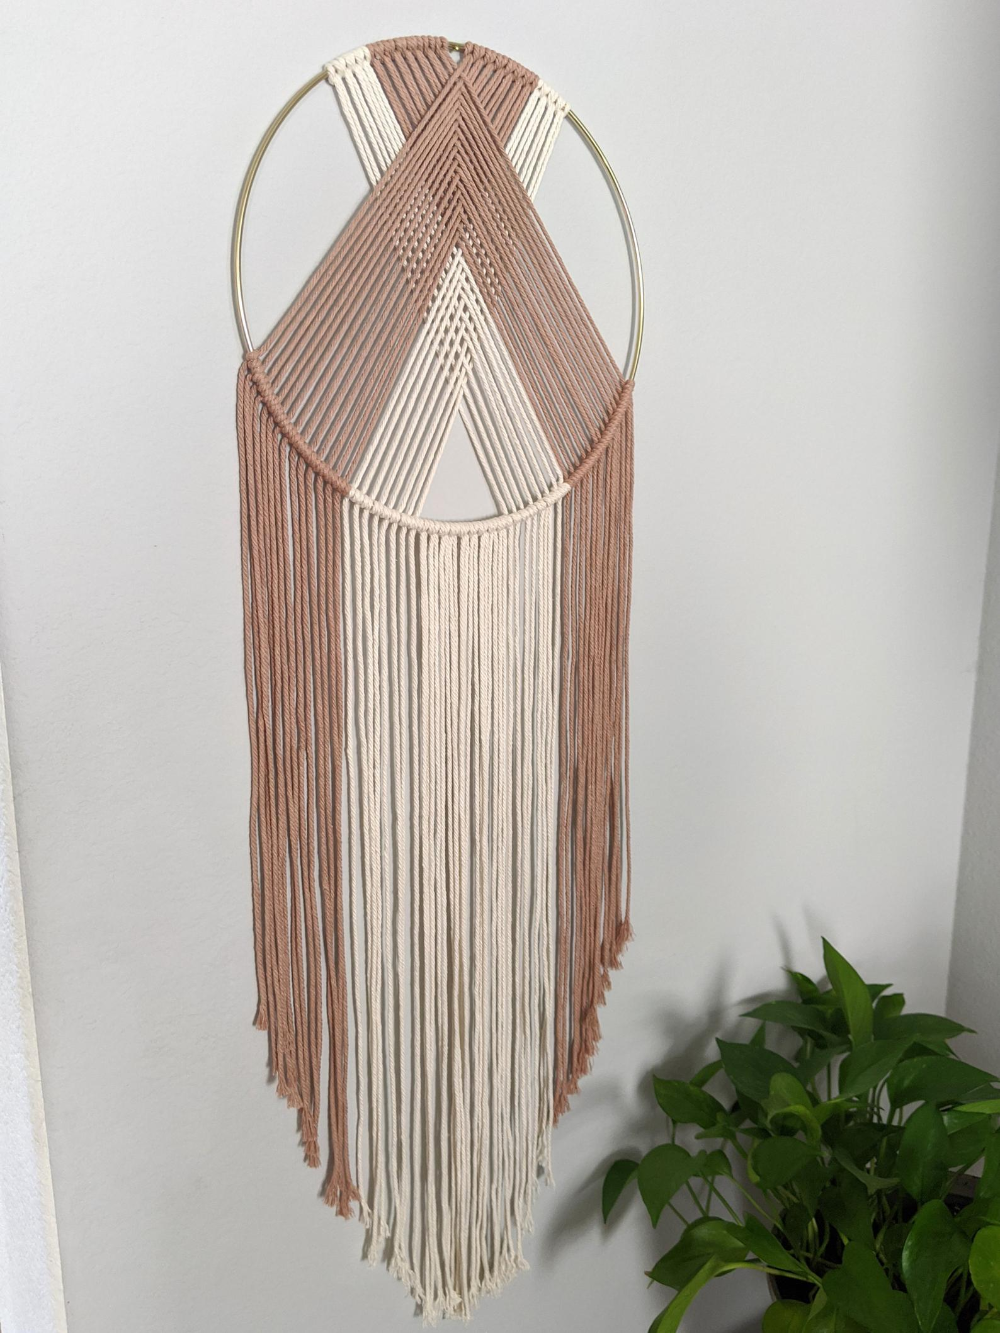 Macrame Wall Hanging Dream Catcher Using Two Colors Modern Etsy In 2020 Boho Wall Decor Yarn Wall Hanging Wall Hanging Diy